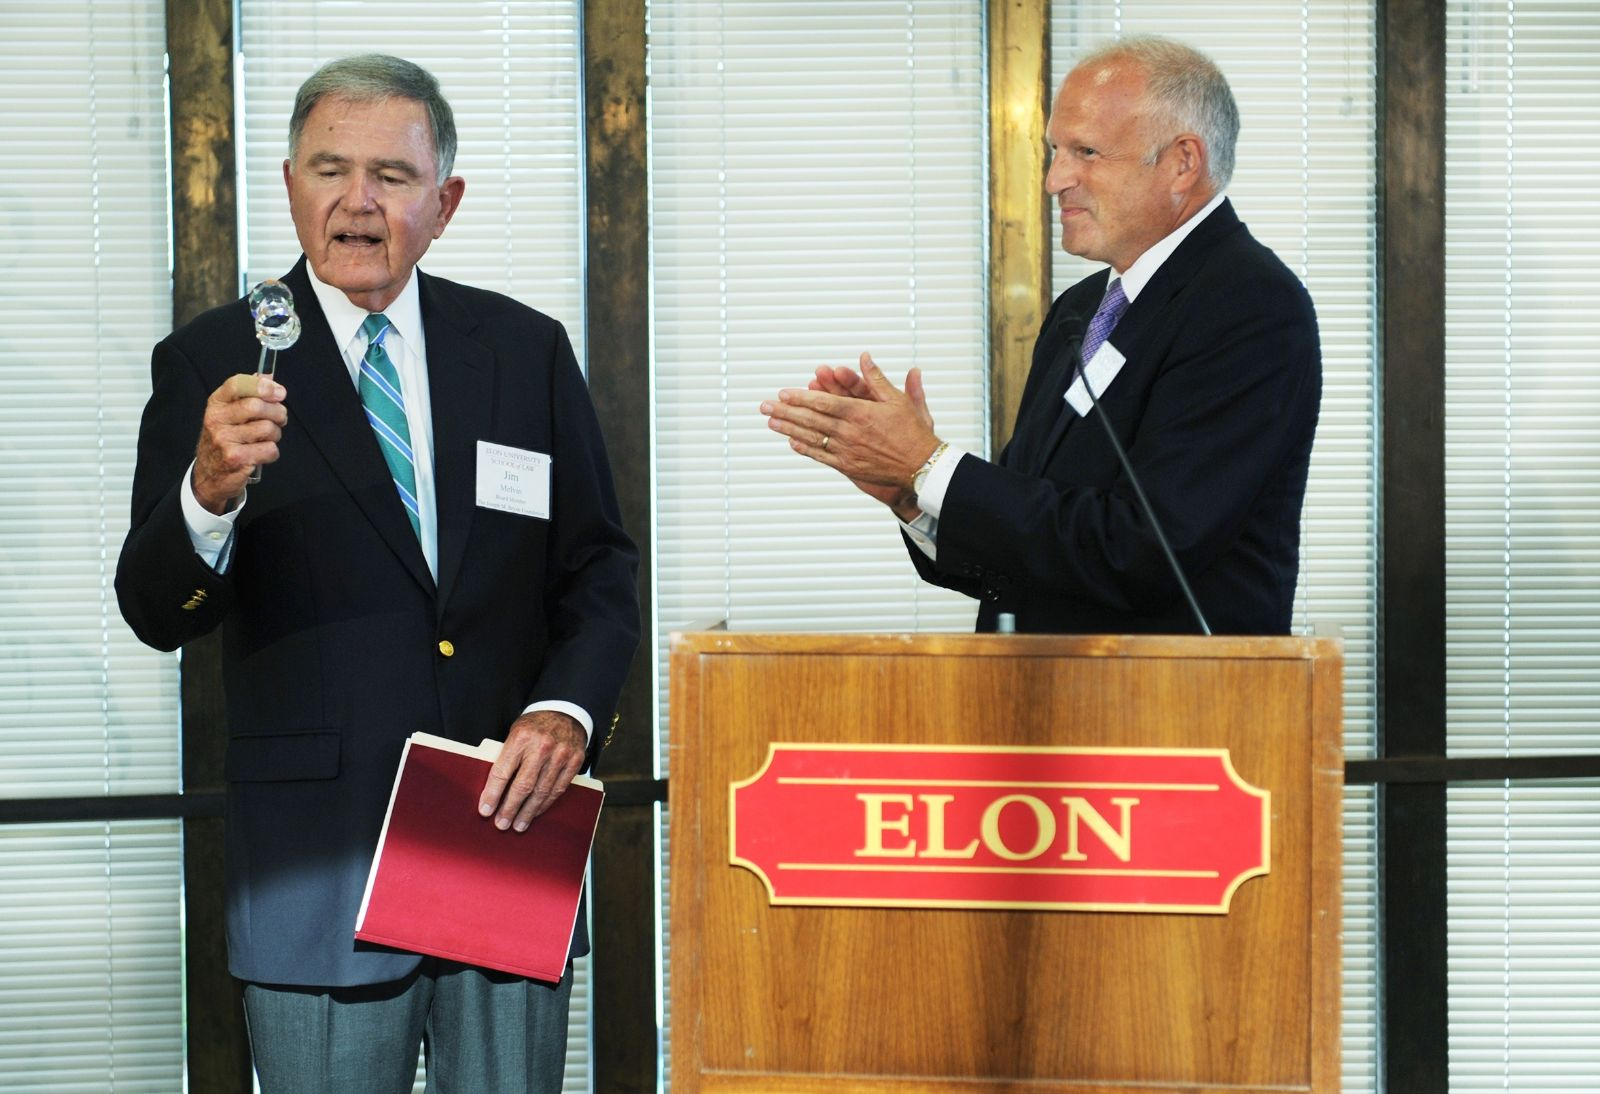 Jim Melvin, left, receives a crystal gavel from Elon president Leo M. Lambert